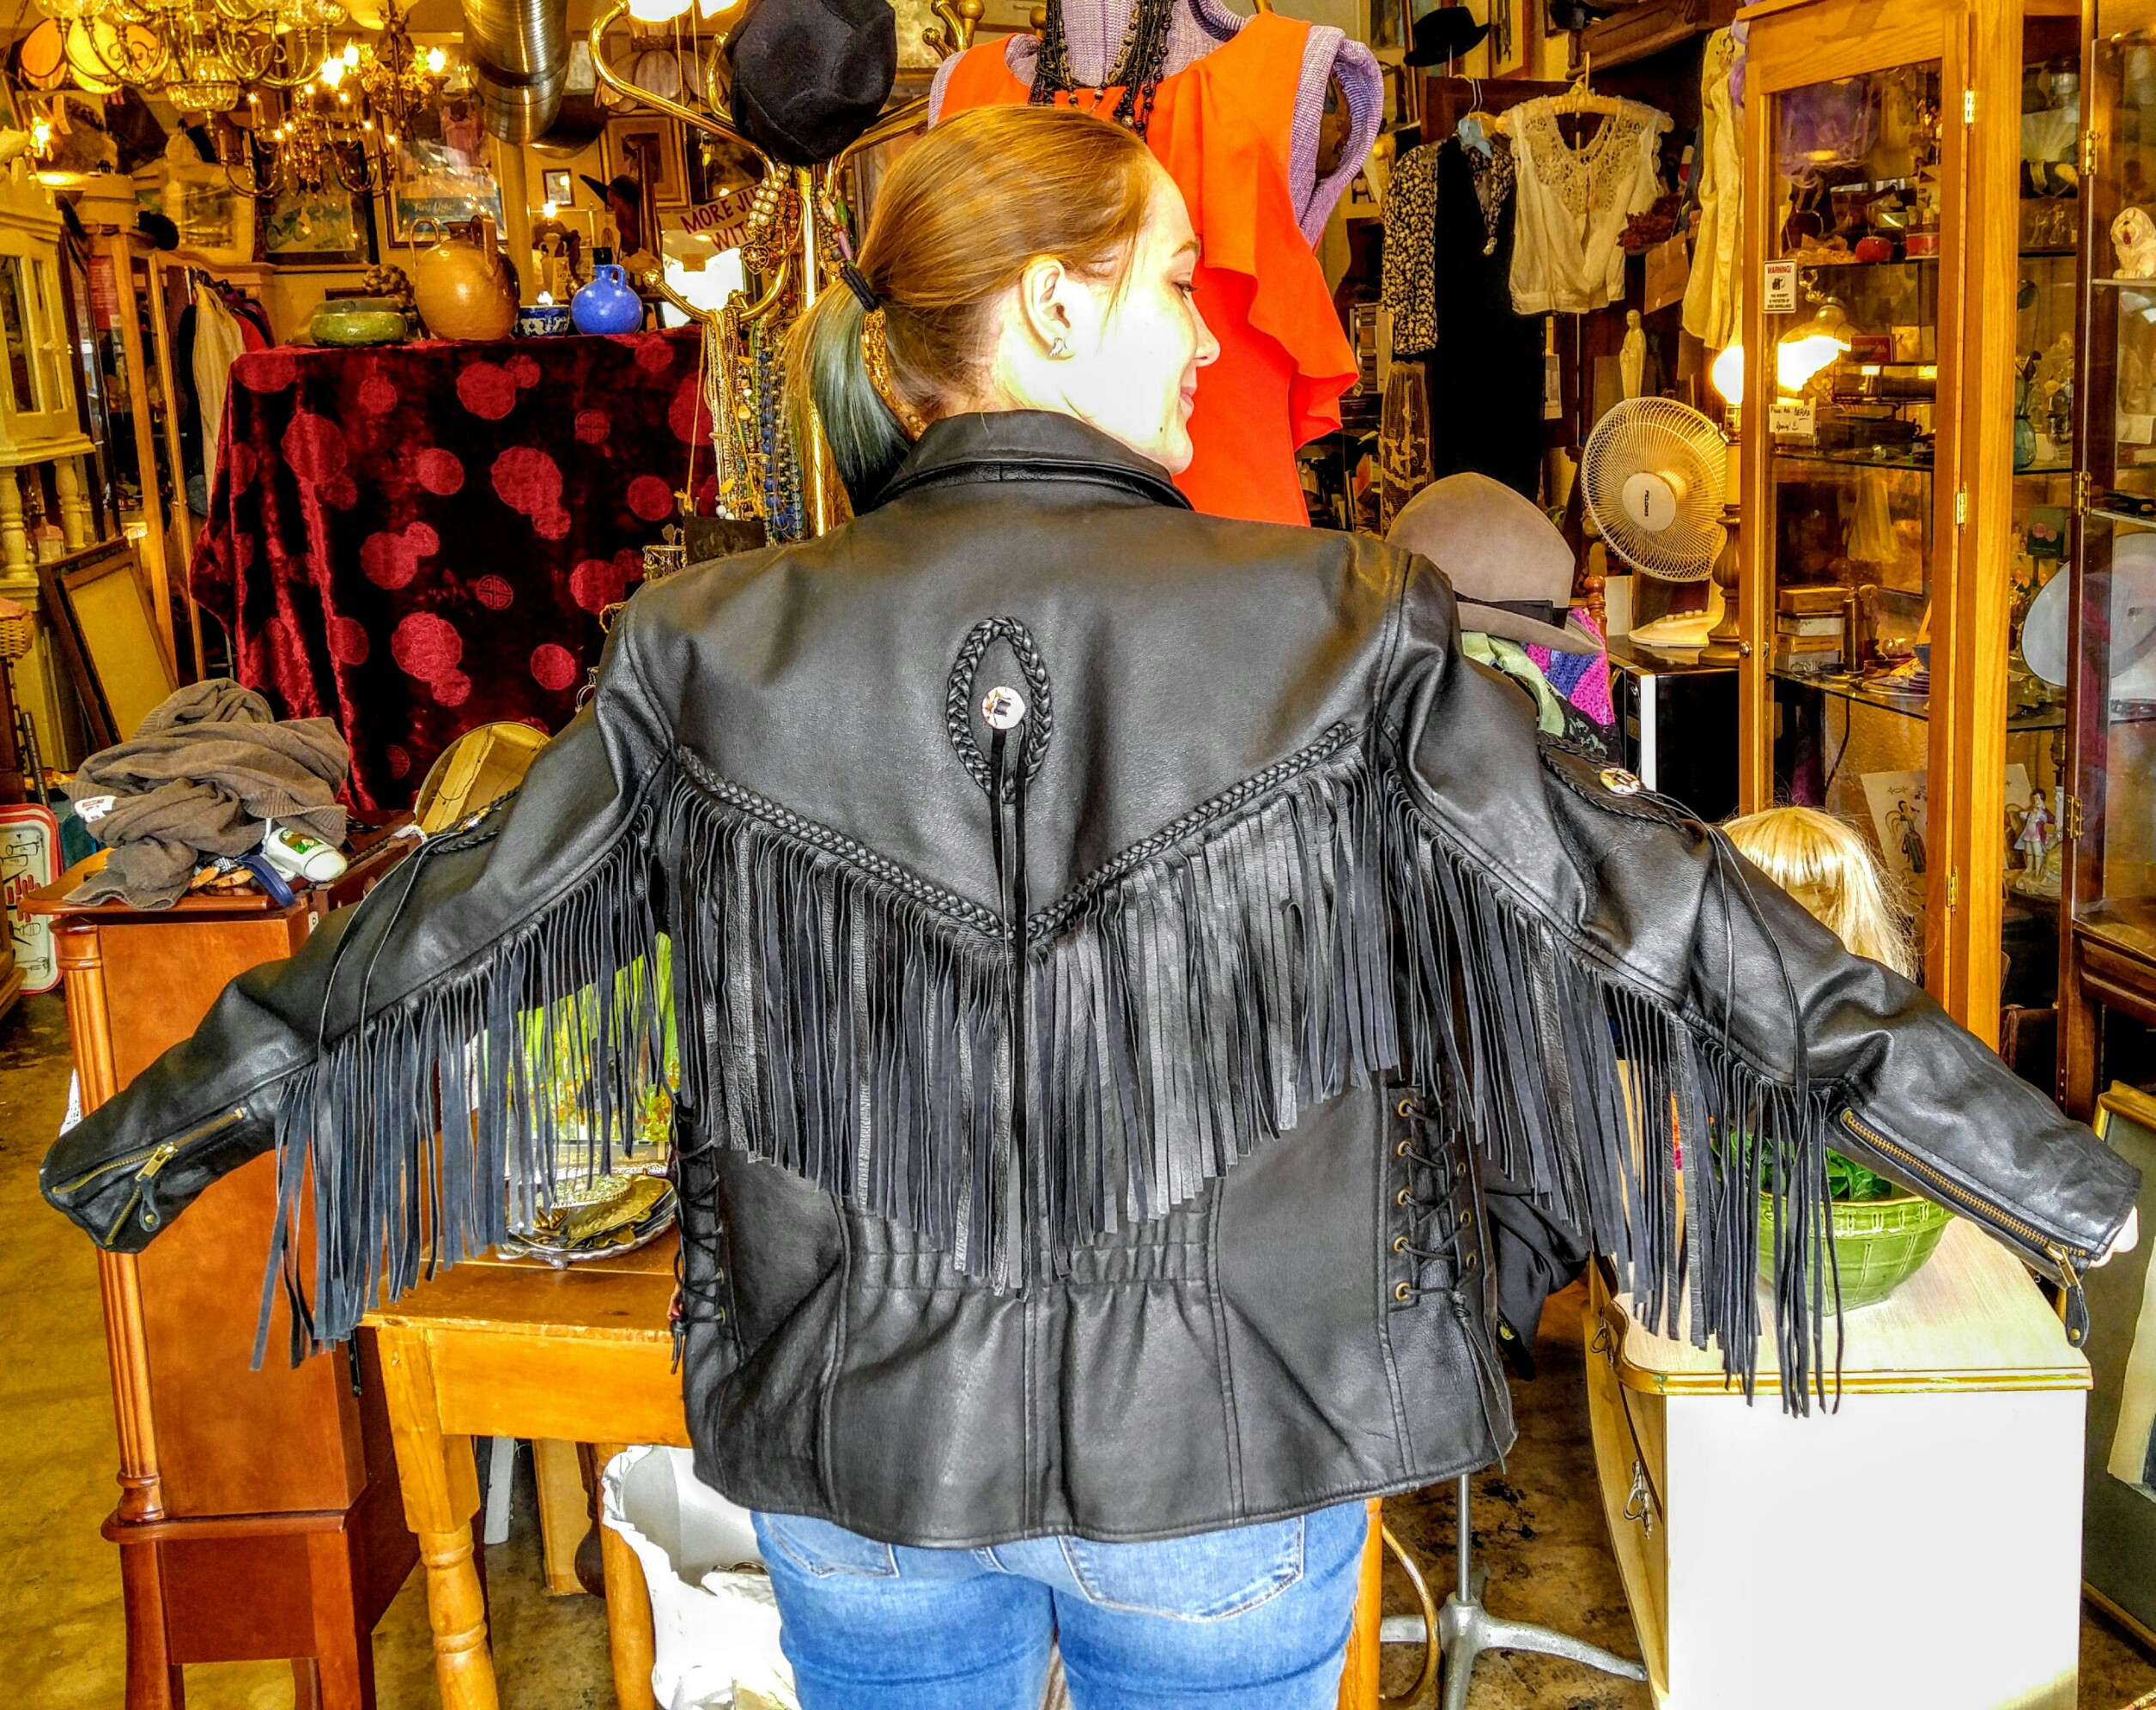 Vintage Clothing & Accessories for Men & Women, Vintage Fashion Fort Worth